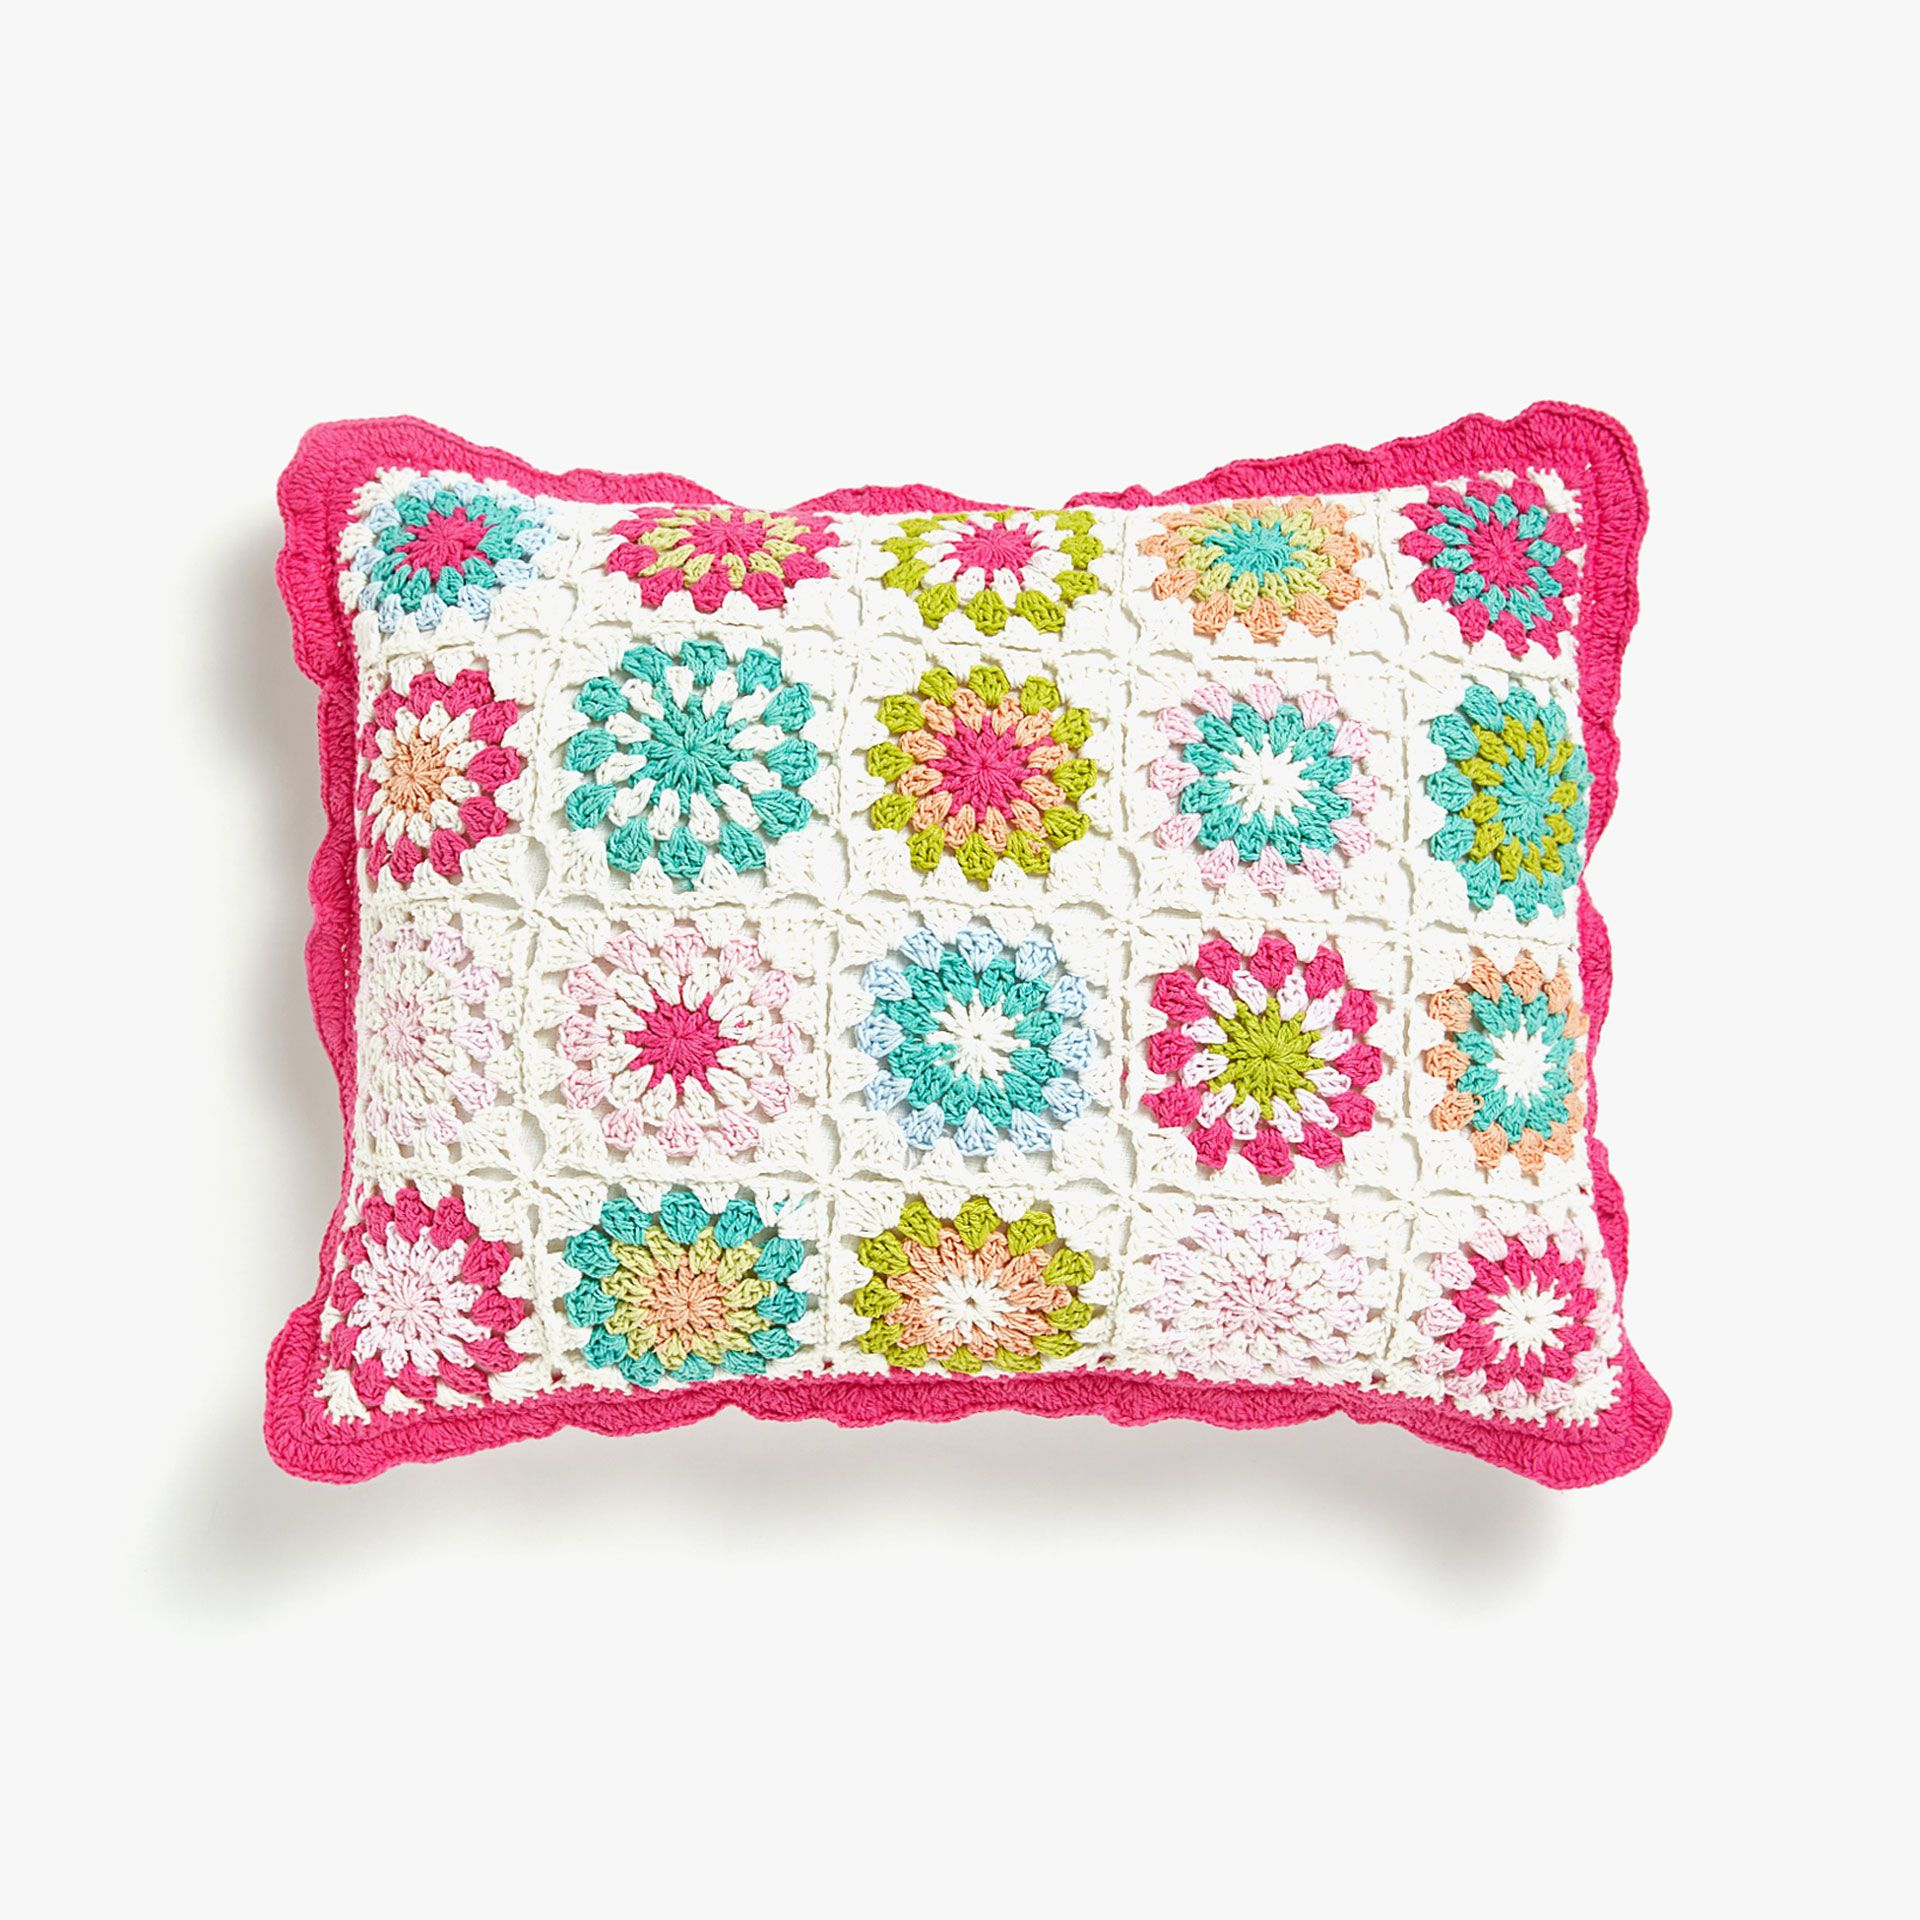 Image 1 Of The Product Multicoloured Floral Crochet Cushion Cover